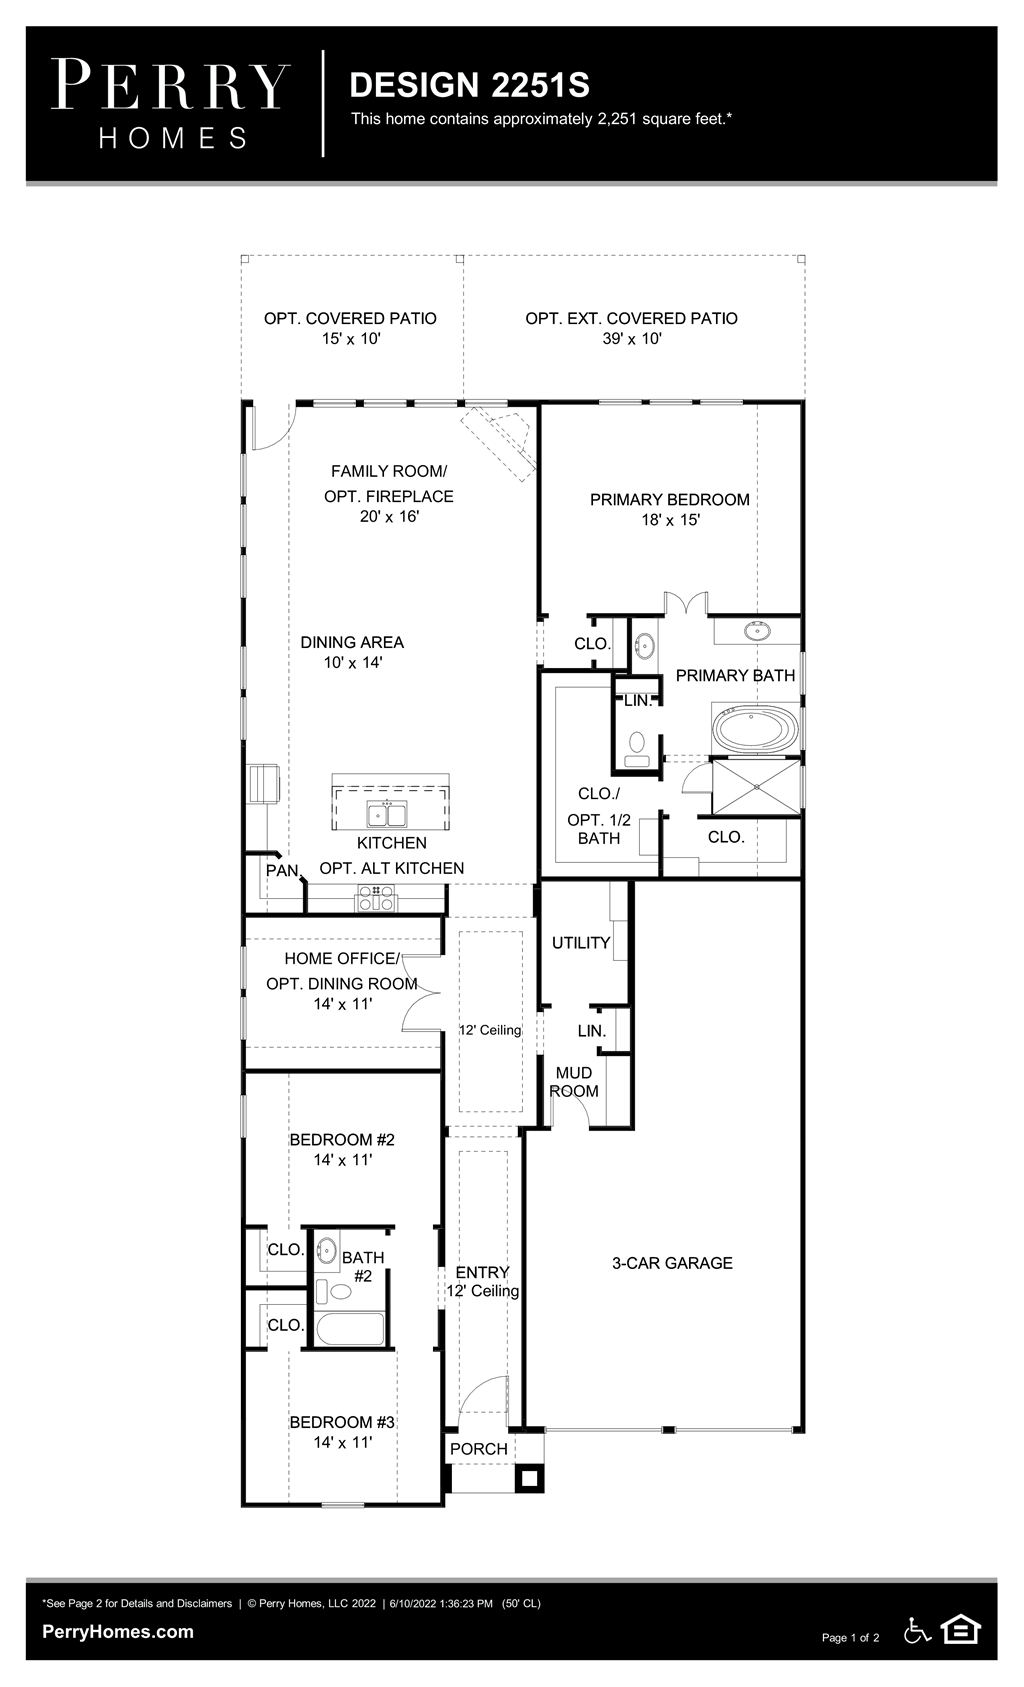 Floor Plan for 2251S